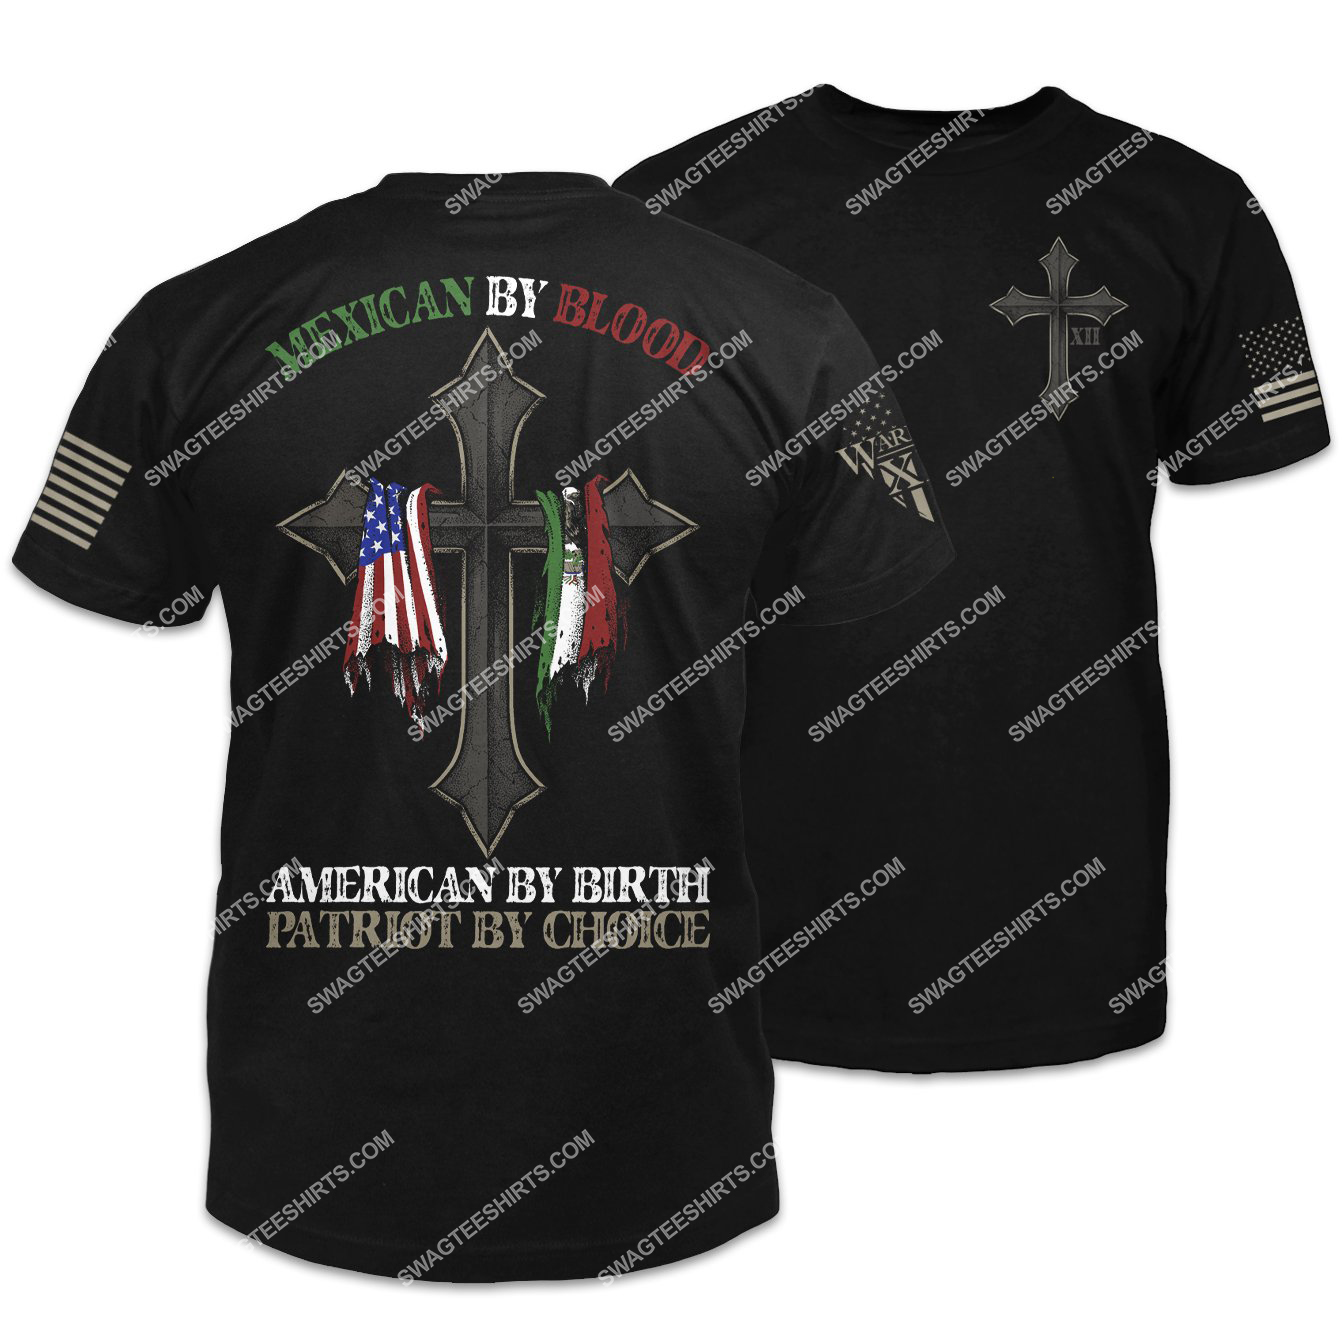 mexican by blood american by birth patriot by choice shirt 1